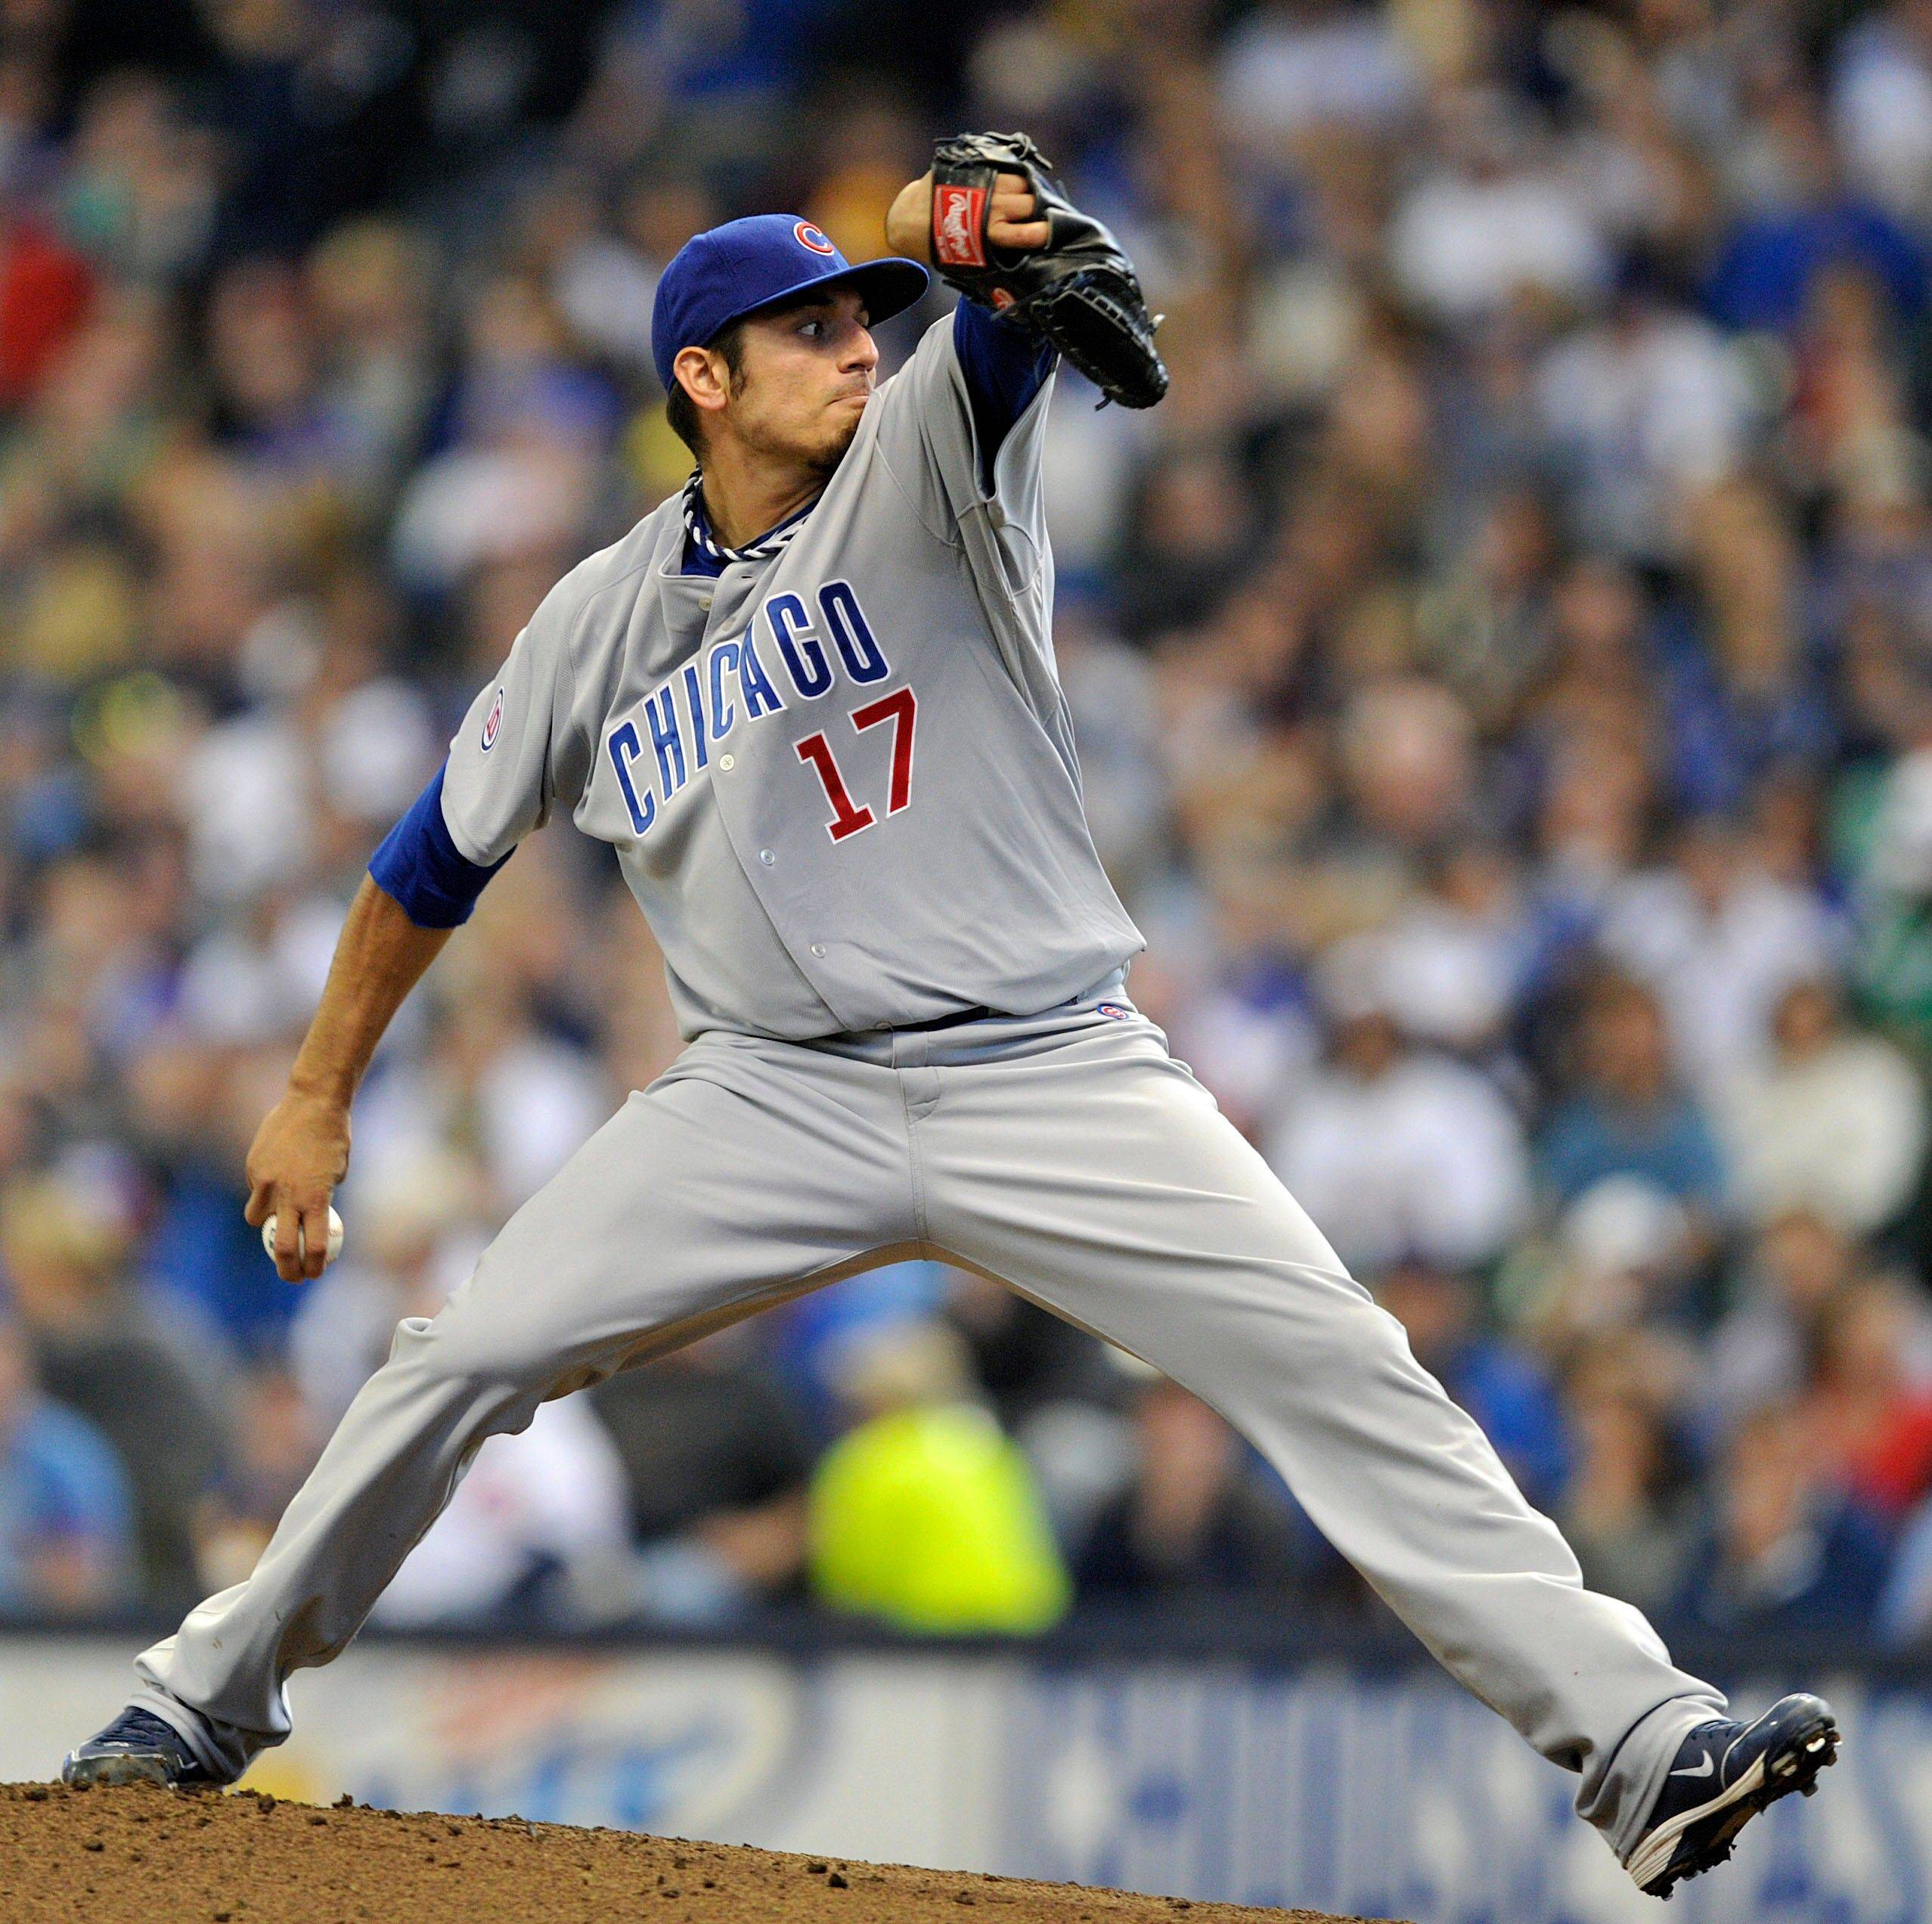 Matt Garza will start Game 1 of the Cubs doubleheader against San Diego.